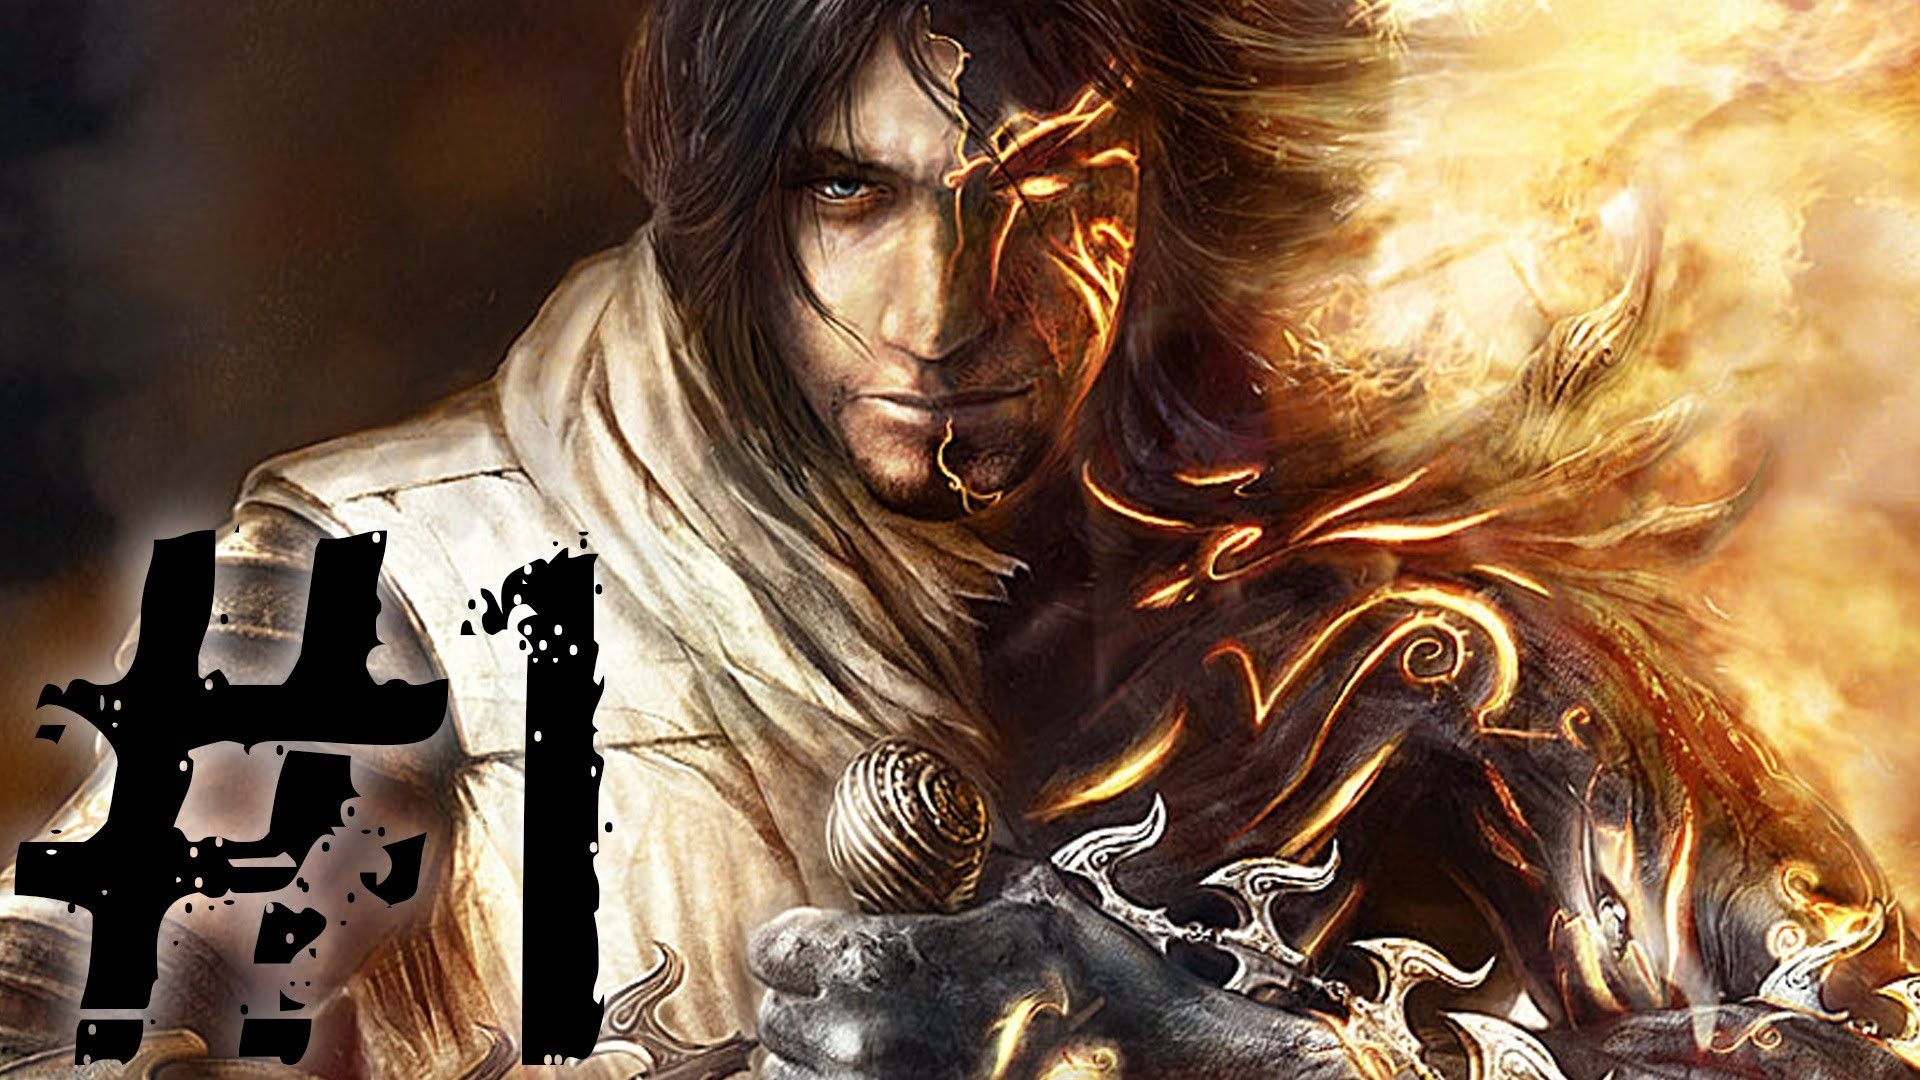 Prince of Persia The Sands of Time - Walkthrough Part 1. Game Walkthrough